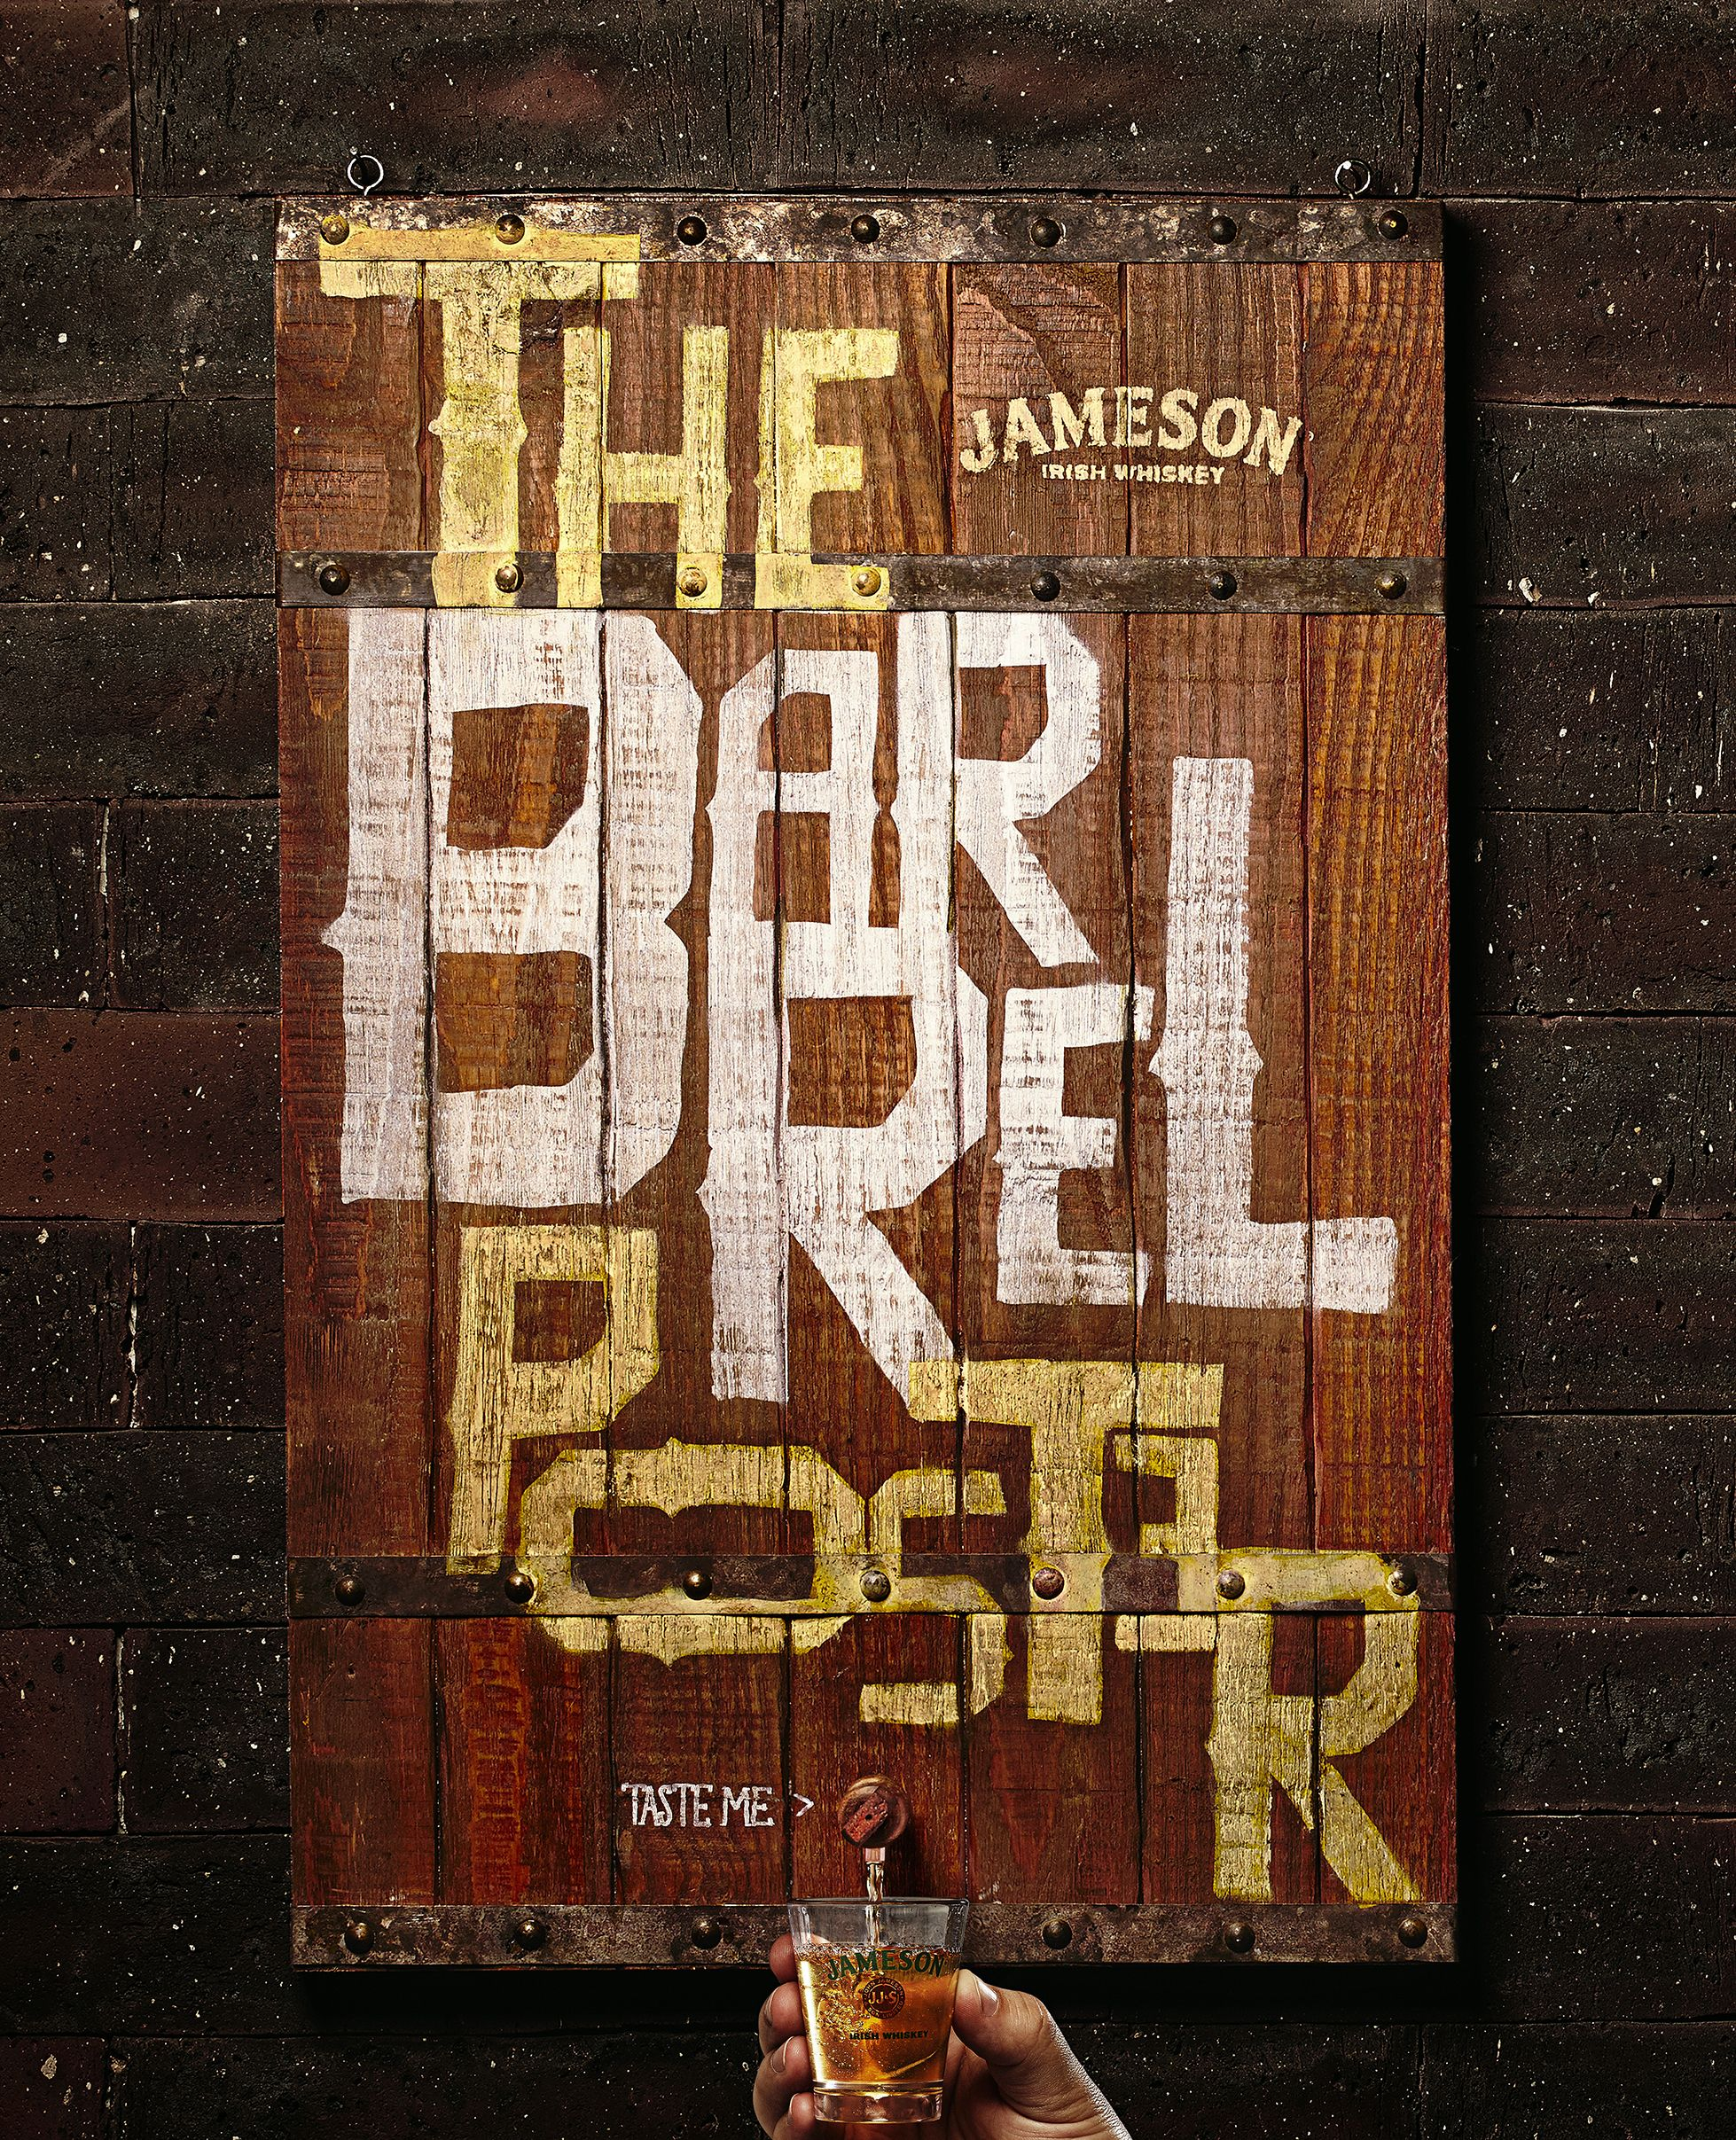 The Barrel Poster